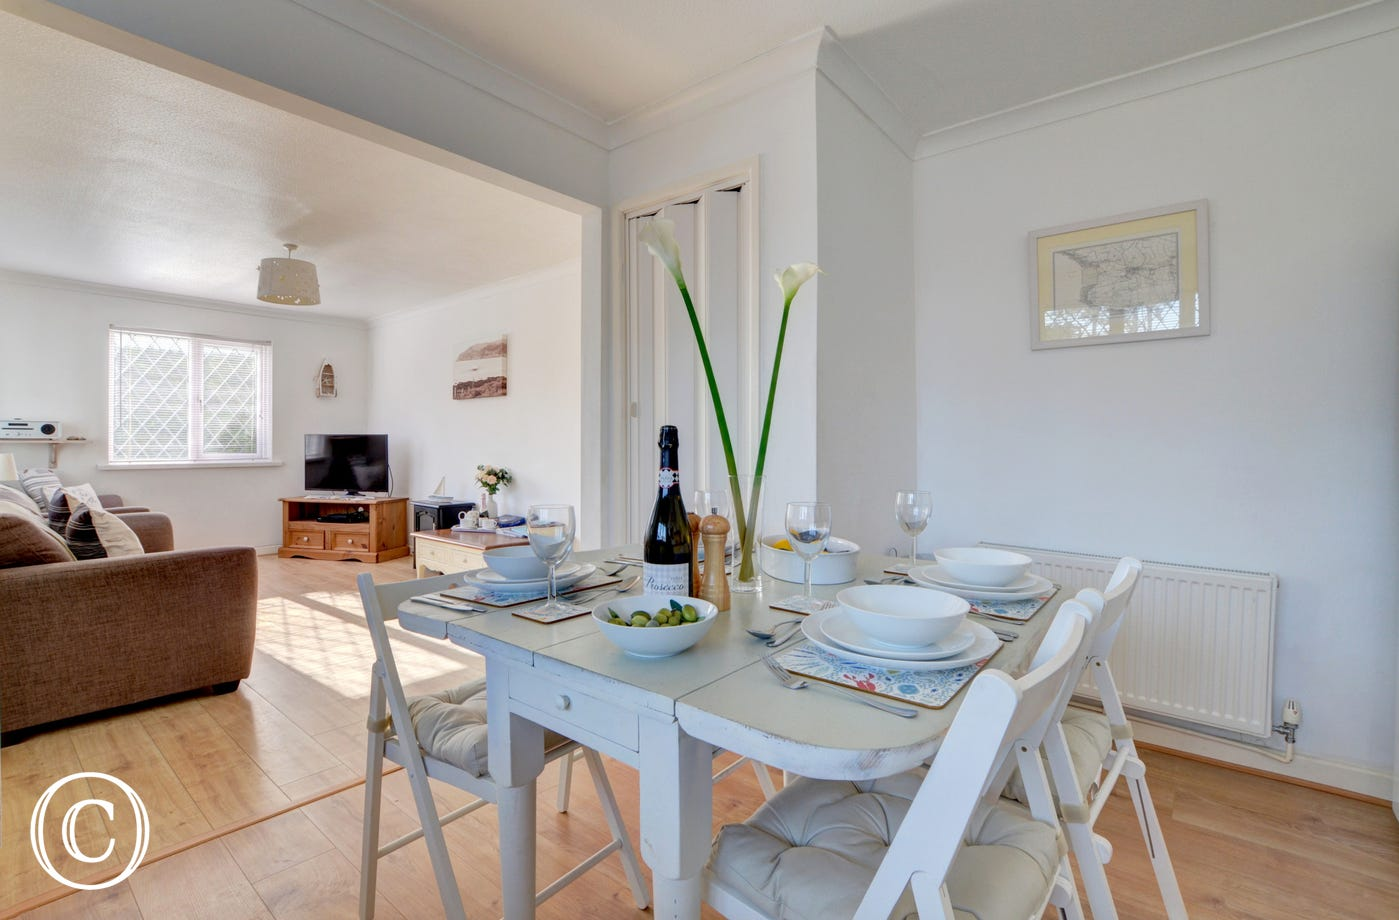 Enjoy family meals together around the kitchen dining table